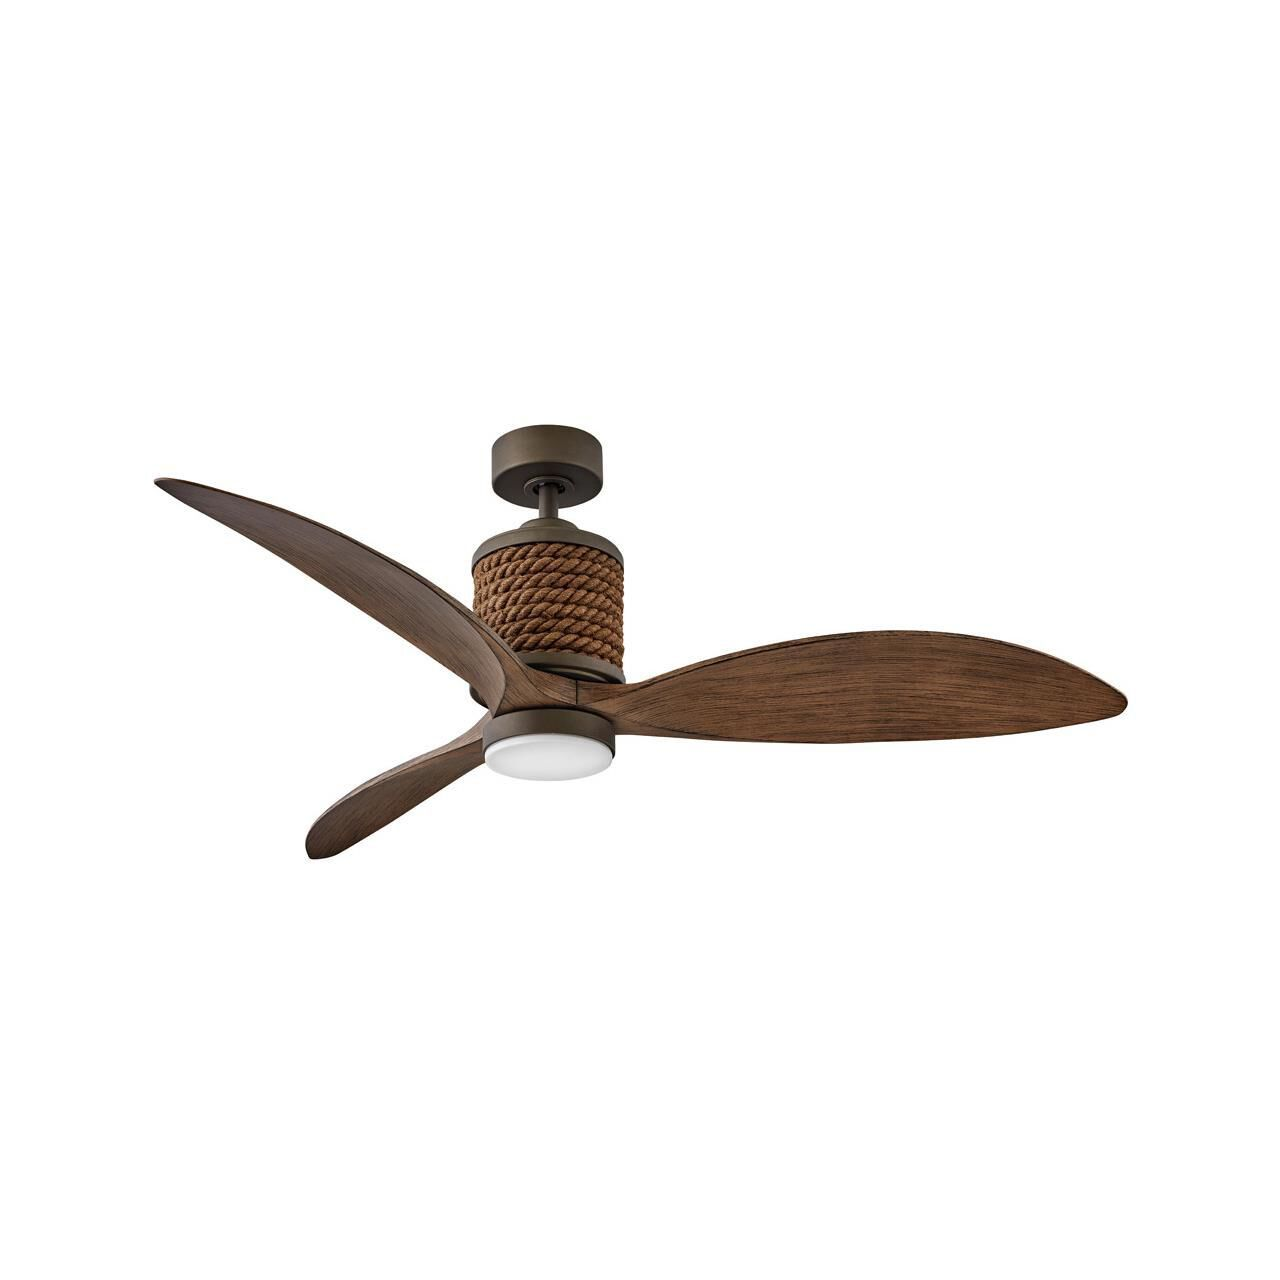 Marin 60 Inch Ceiling Fan With Light Kit Capitol Lighting In 2021 Ceiling Fan With Light 60 Inch Ceiling Fans Ceiling Fan 60 inch outdoor ceiling fan